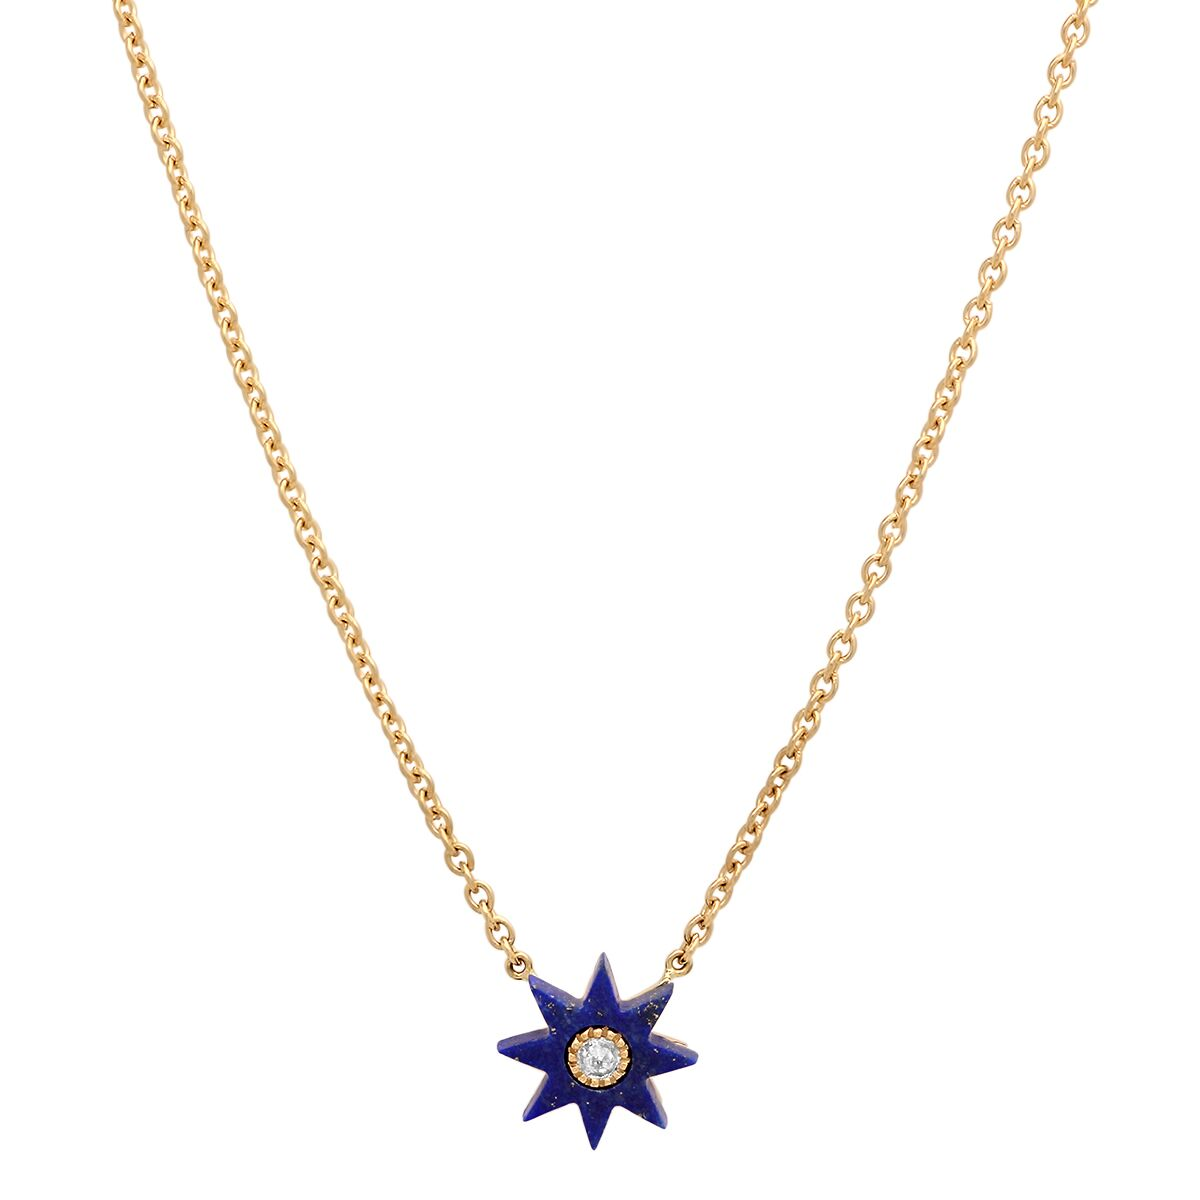 Lapis Blue Star Necklace by Colette for Broken English Jewelry